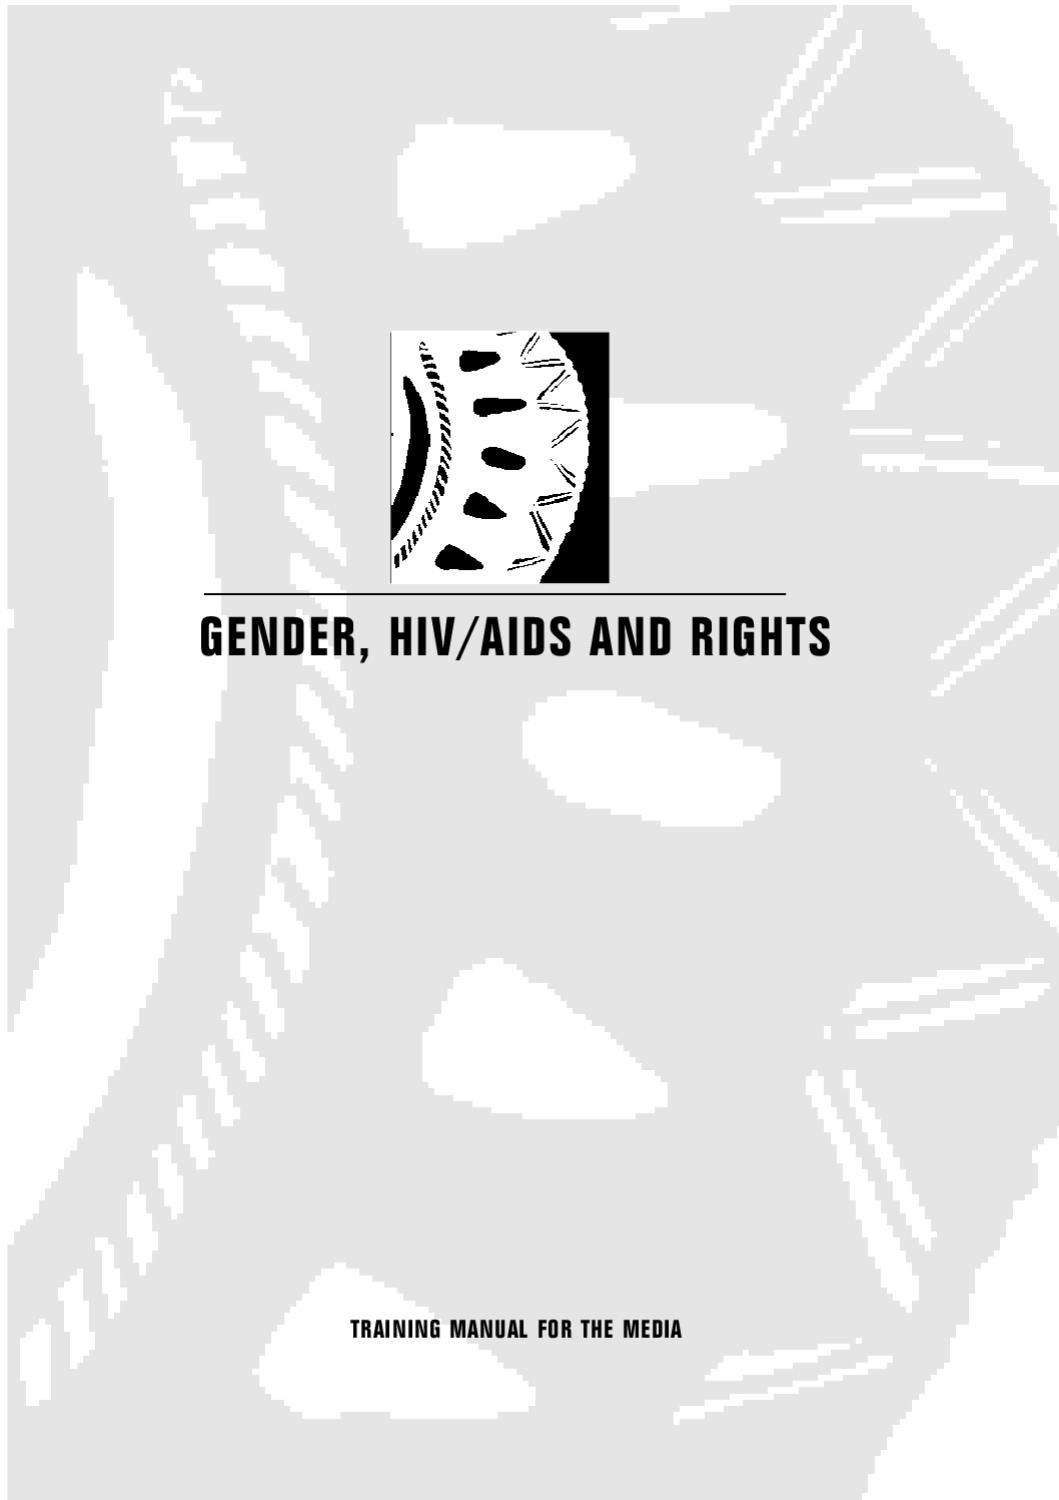 Gender, HIV/AIDS and rights: a training manual for the